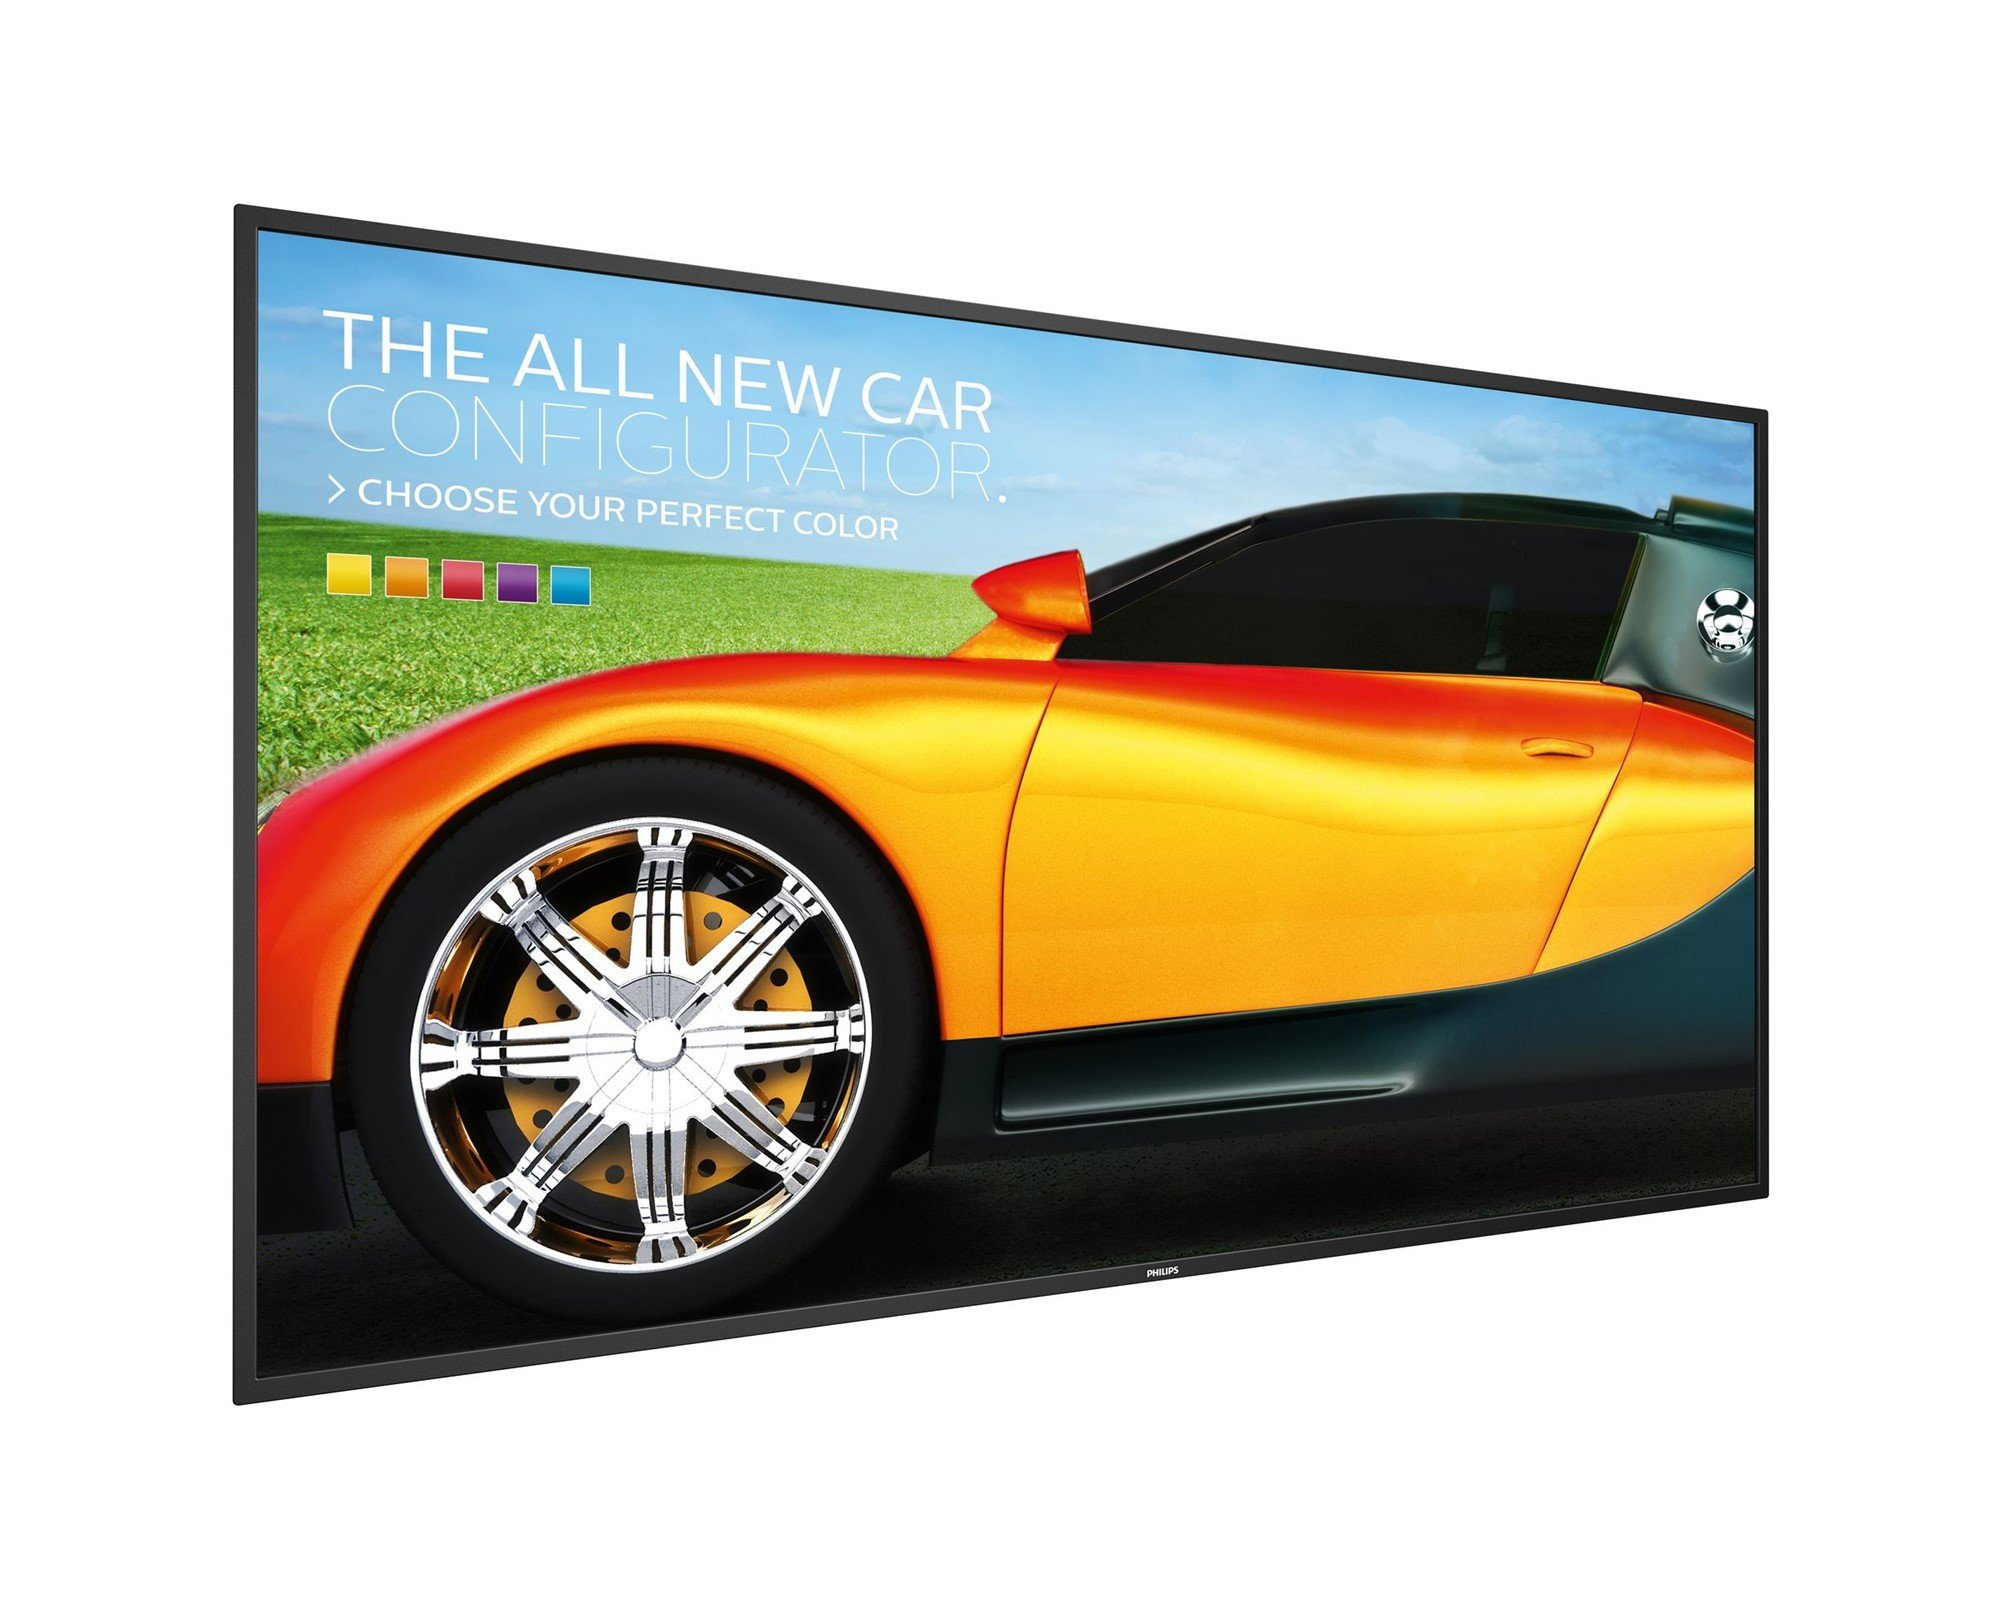 Philips 65BDL3000Q 65 Display Q-Line w/HTML5 browser, 1080p, VA &, 65BDL3000Q_00 (w/HTML5 browser, 1080p, VA & 350cd/mý Direct-LED (Landscape 16/7 - Portrait 12/7))